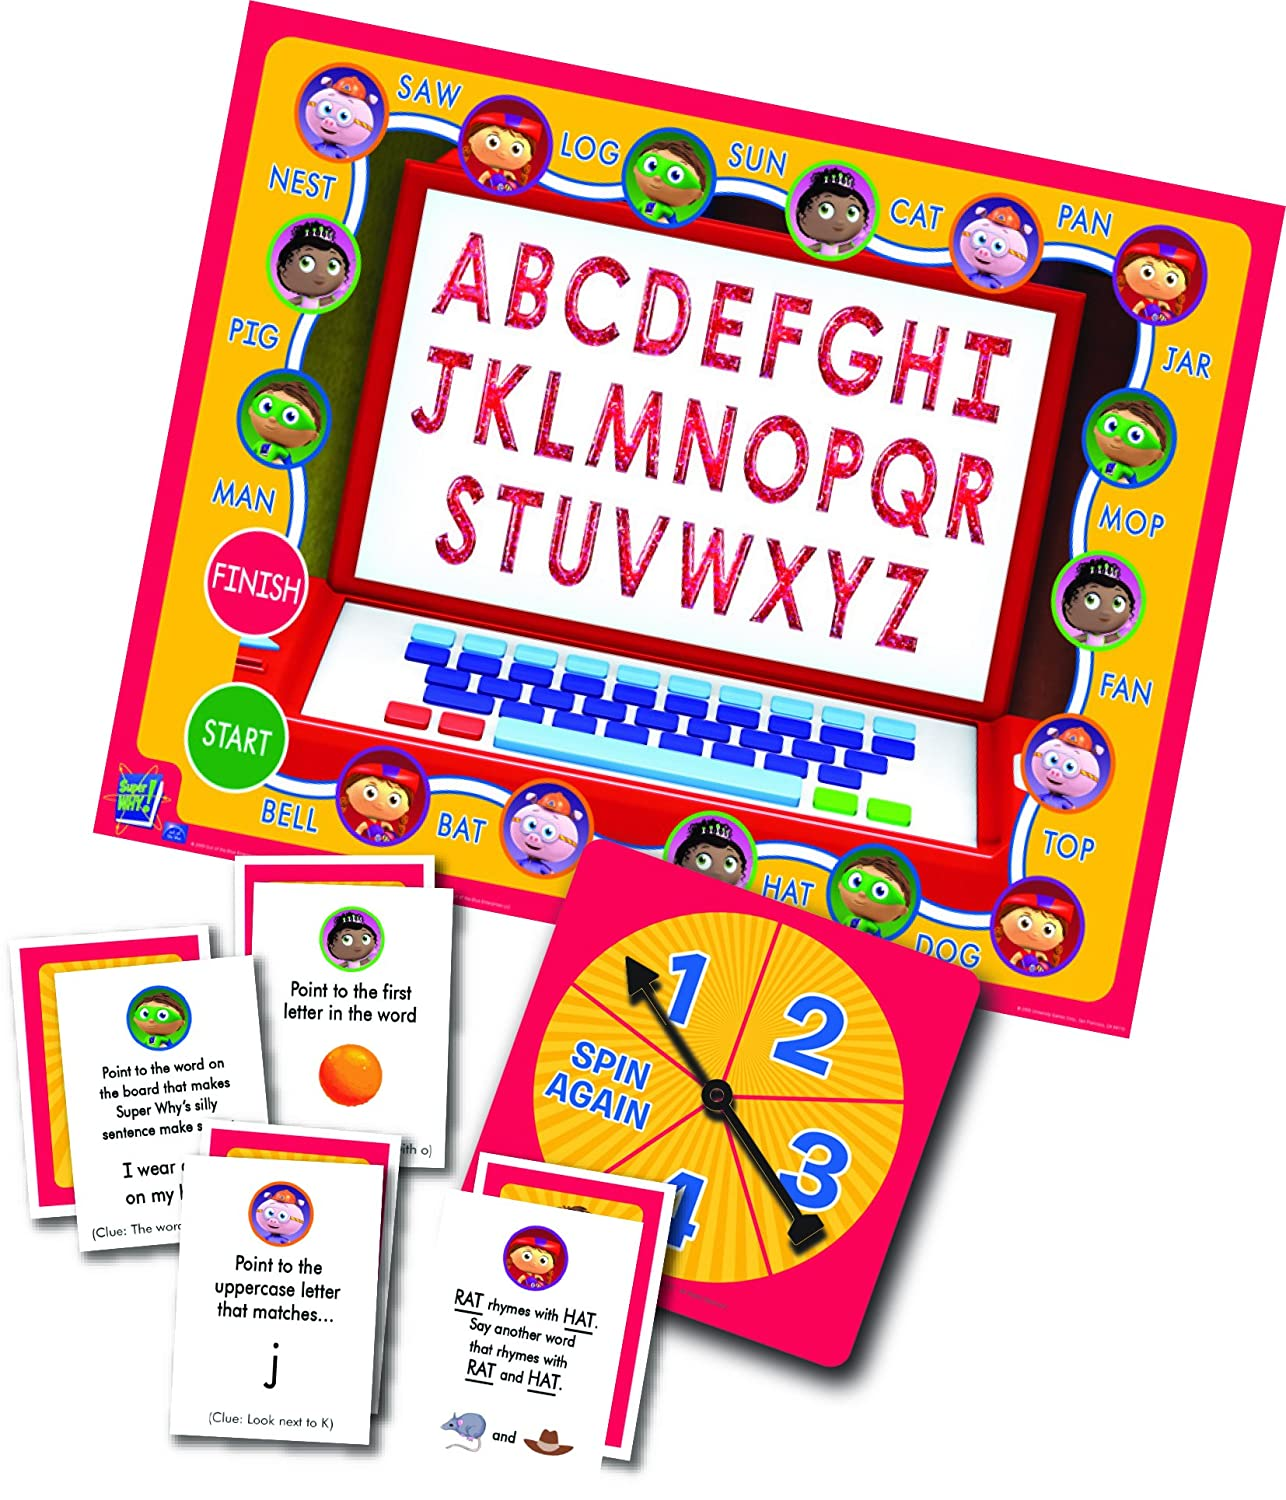 Super Why! Abc Letter Game by Briarpatch